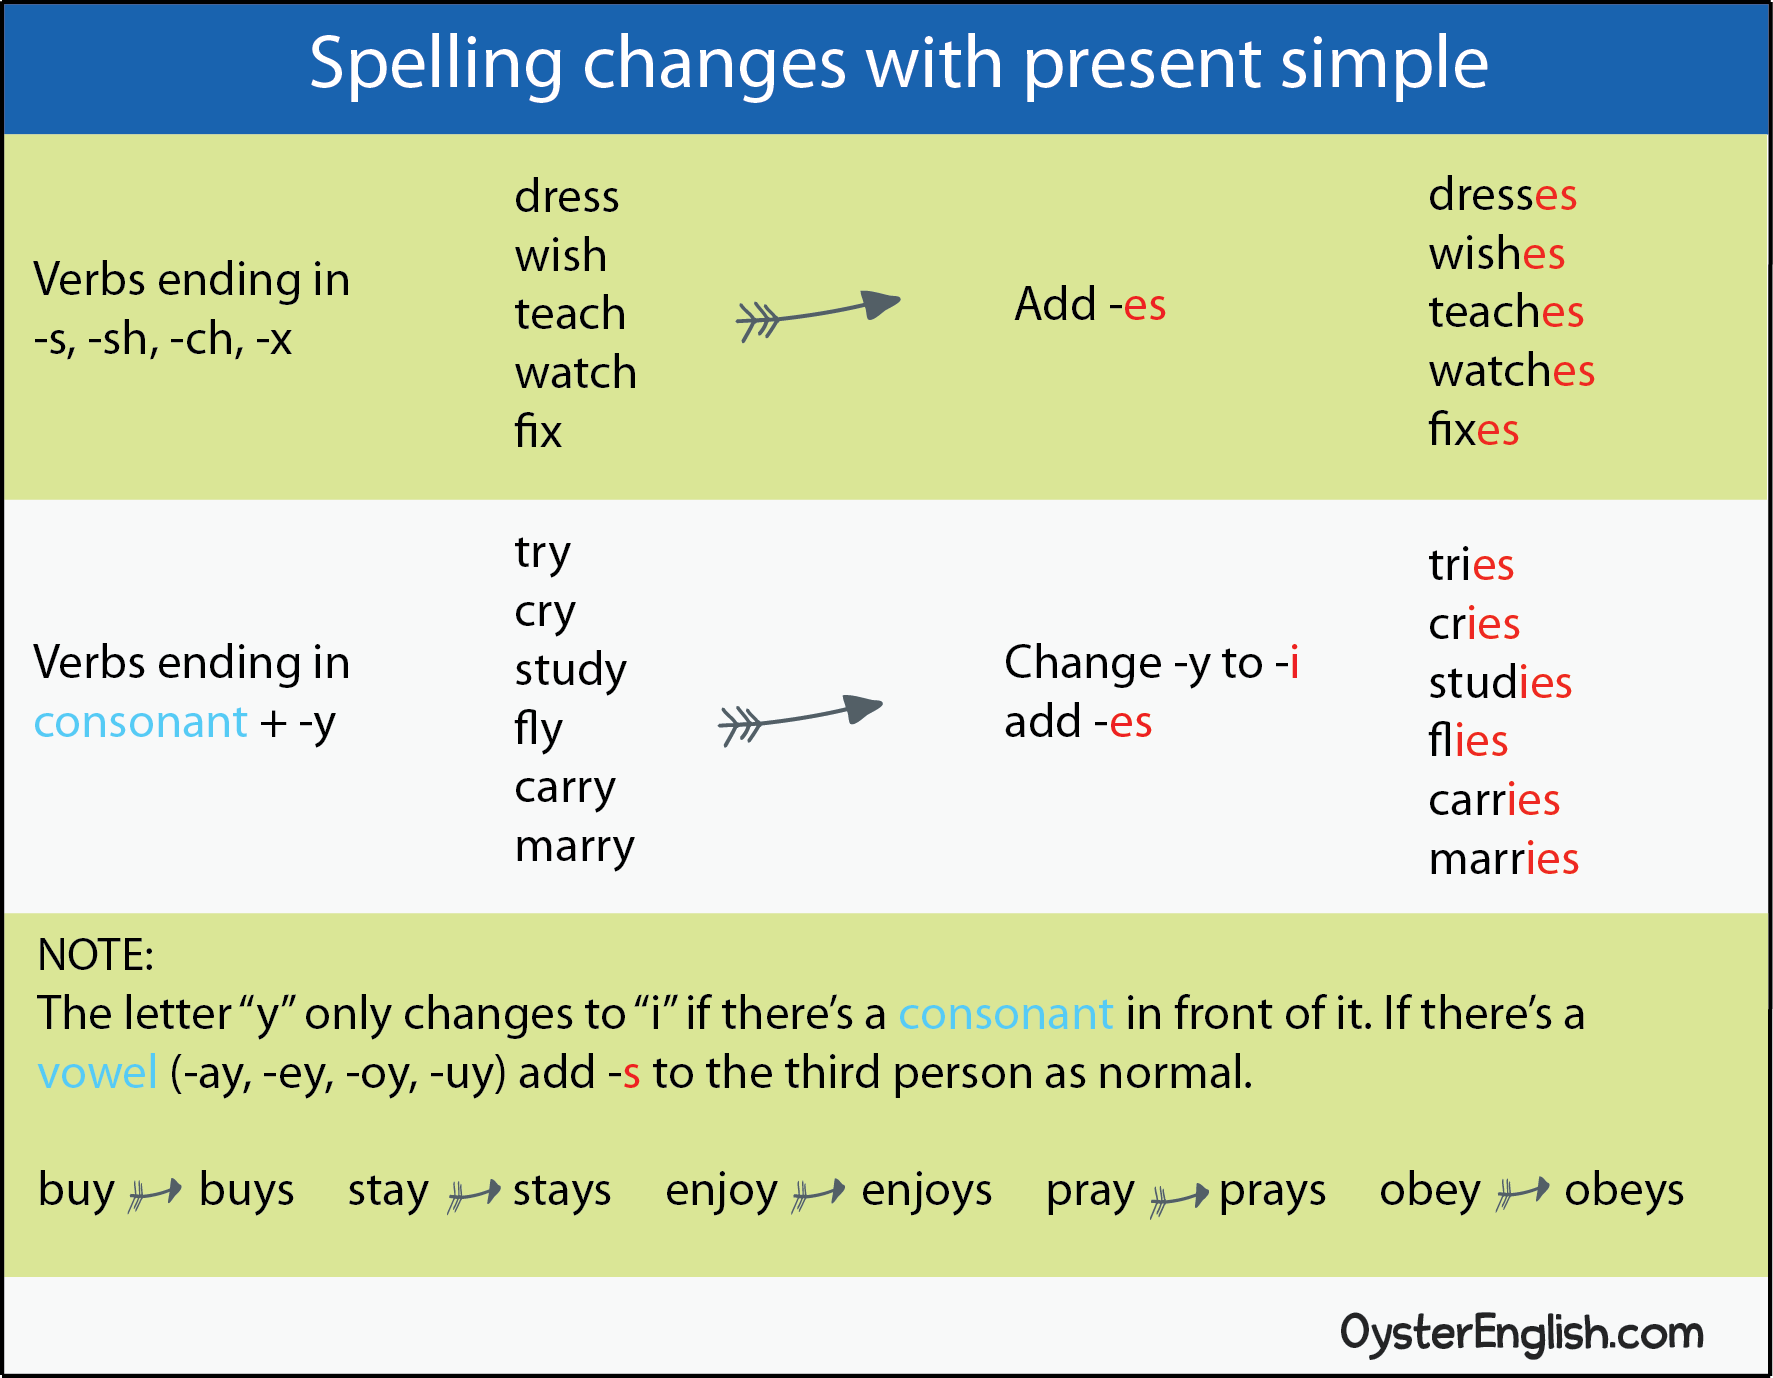 Chart showing how to form the spelling changes for the present simple